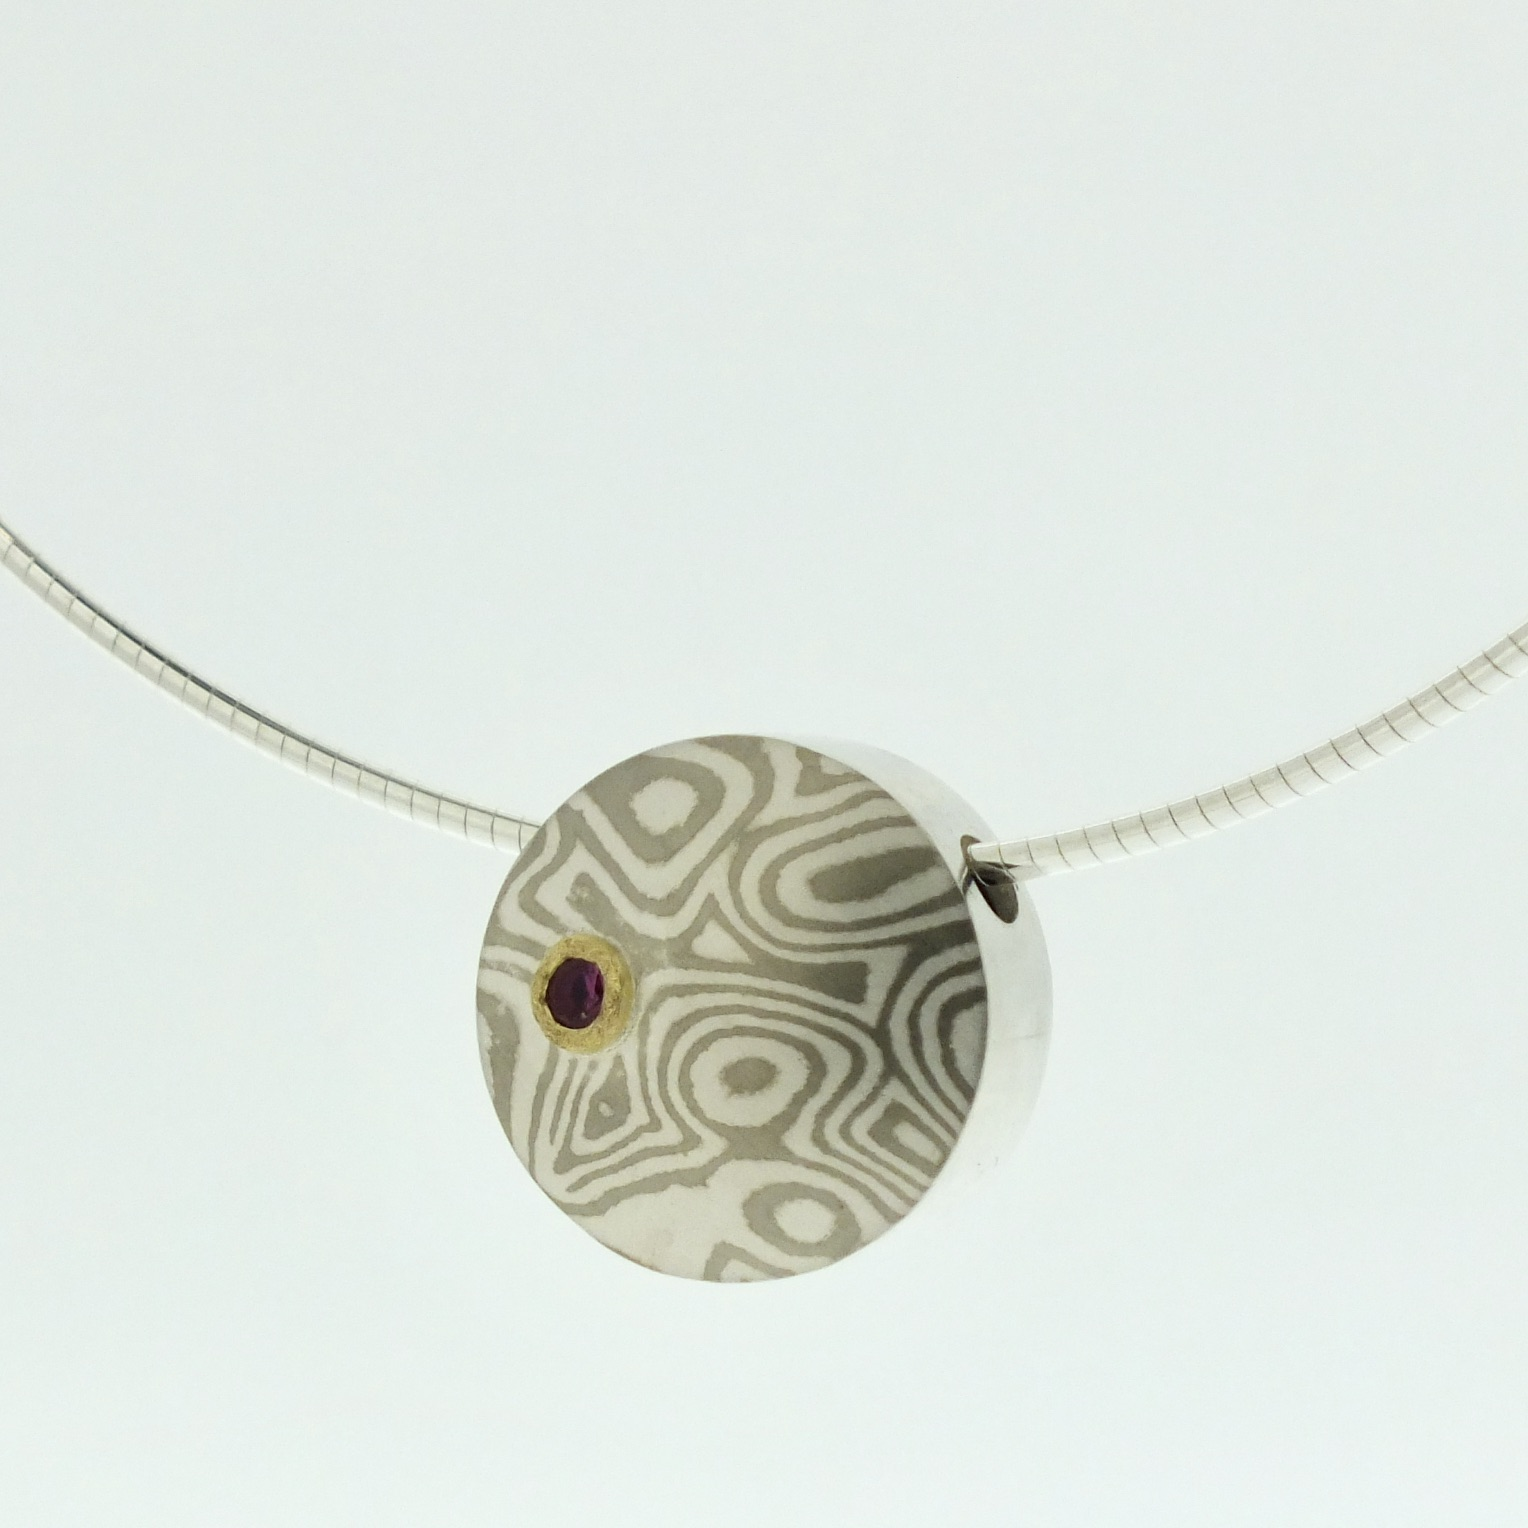 18k white gold and silver mokume gane pendant with pink sapphire in 22k gold setting